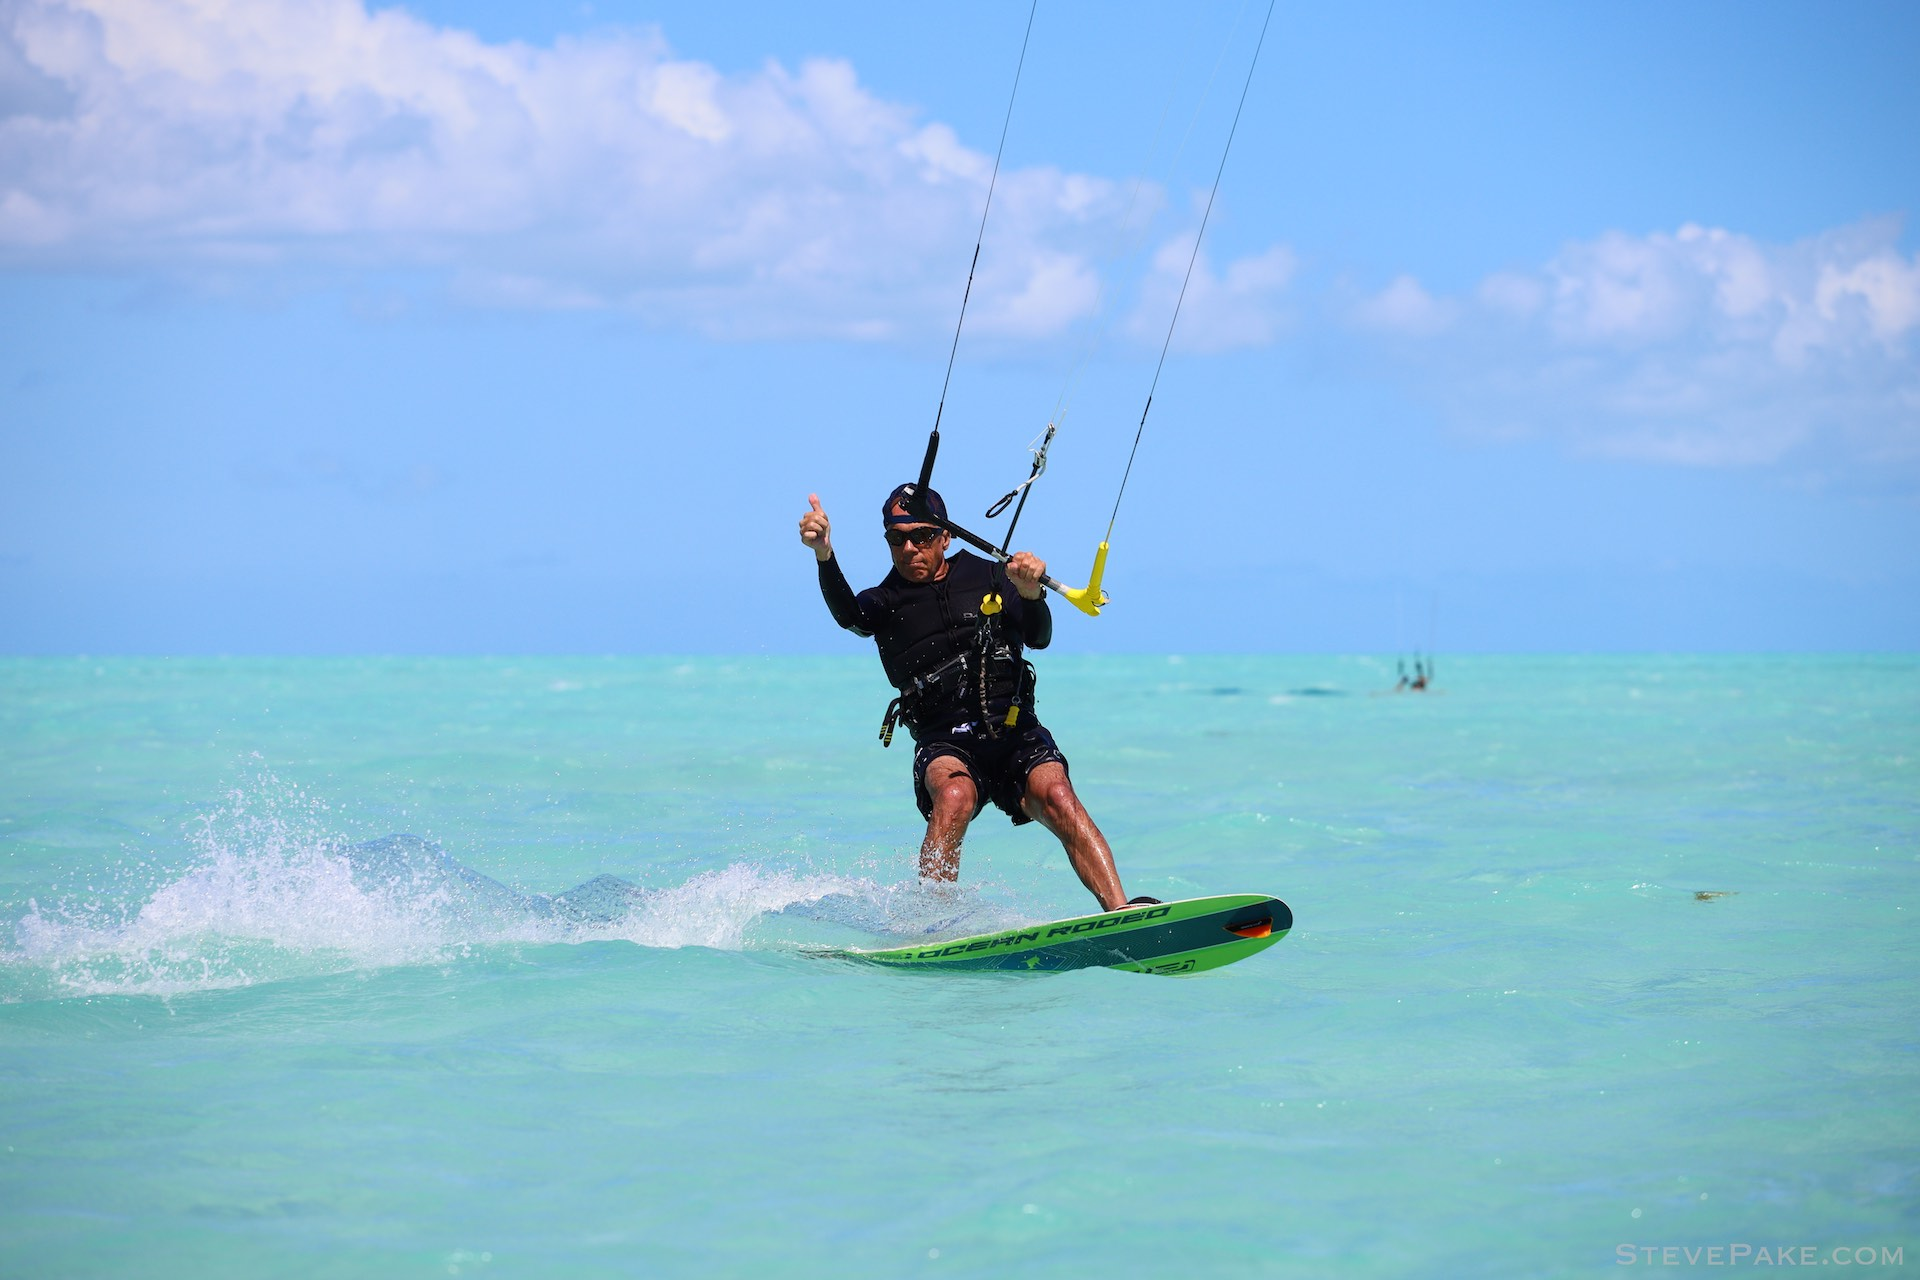 Canon EOS RP and 70-200mm f/4L, Shutter Priority, 1/1000s, 149mm and f/5.6. Long Bay Beach in Turks and Caicos is one of the premier kite surfing places in the world due to the length of the beach, and miles of water that's only 2-3 feet deep. I would have loved to try, but I have hernia issues both from being a big and tall dude, and from cancer surgeries. My body doesn't need to take a rough fall, so I'll just watch and take photos!